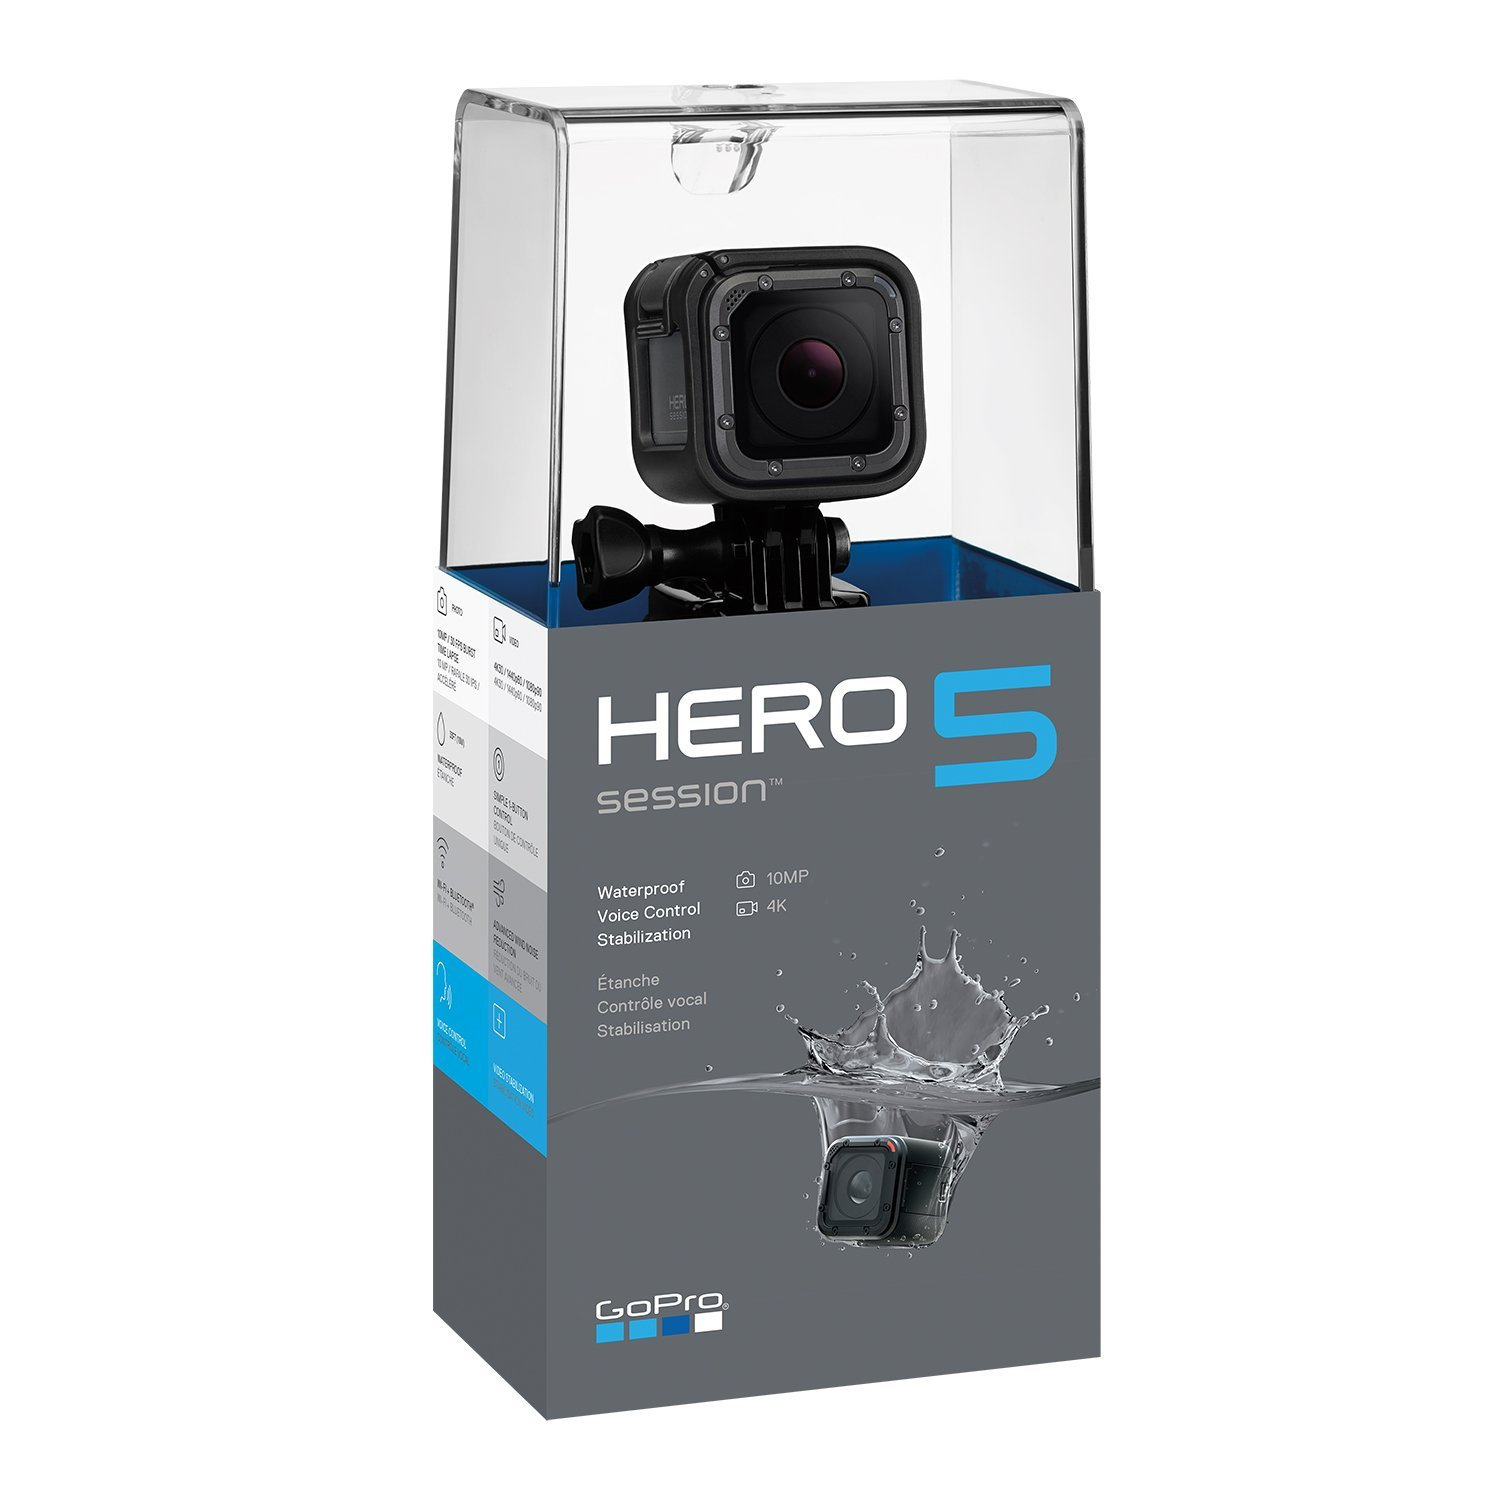 GoPro HERO5 Session Just $199.